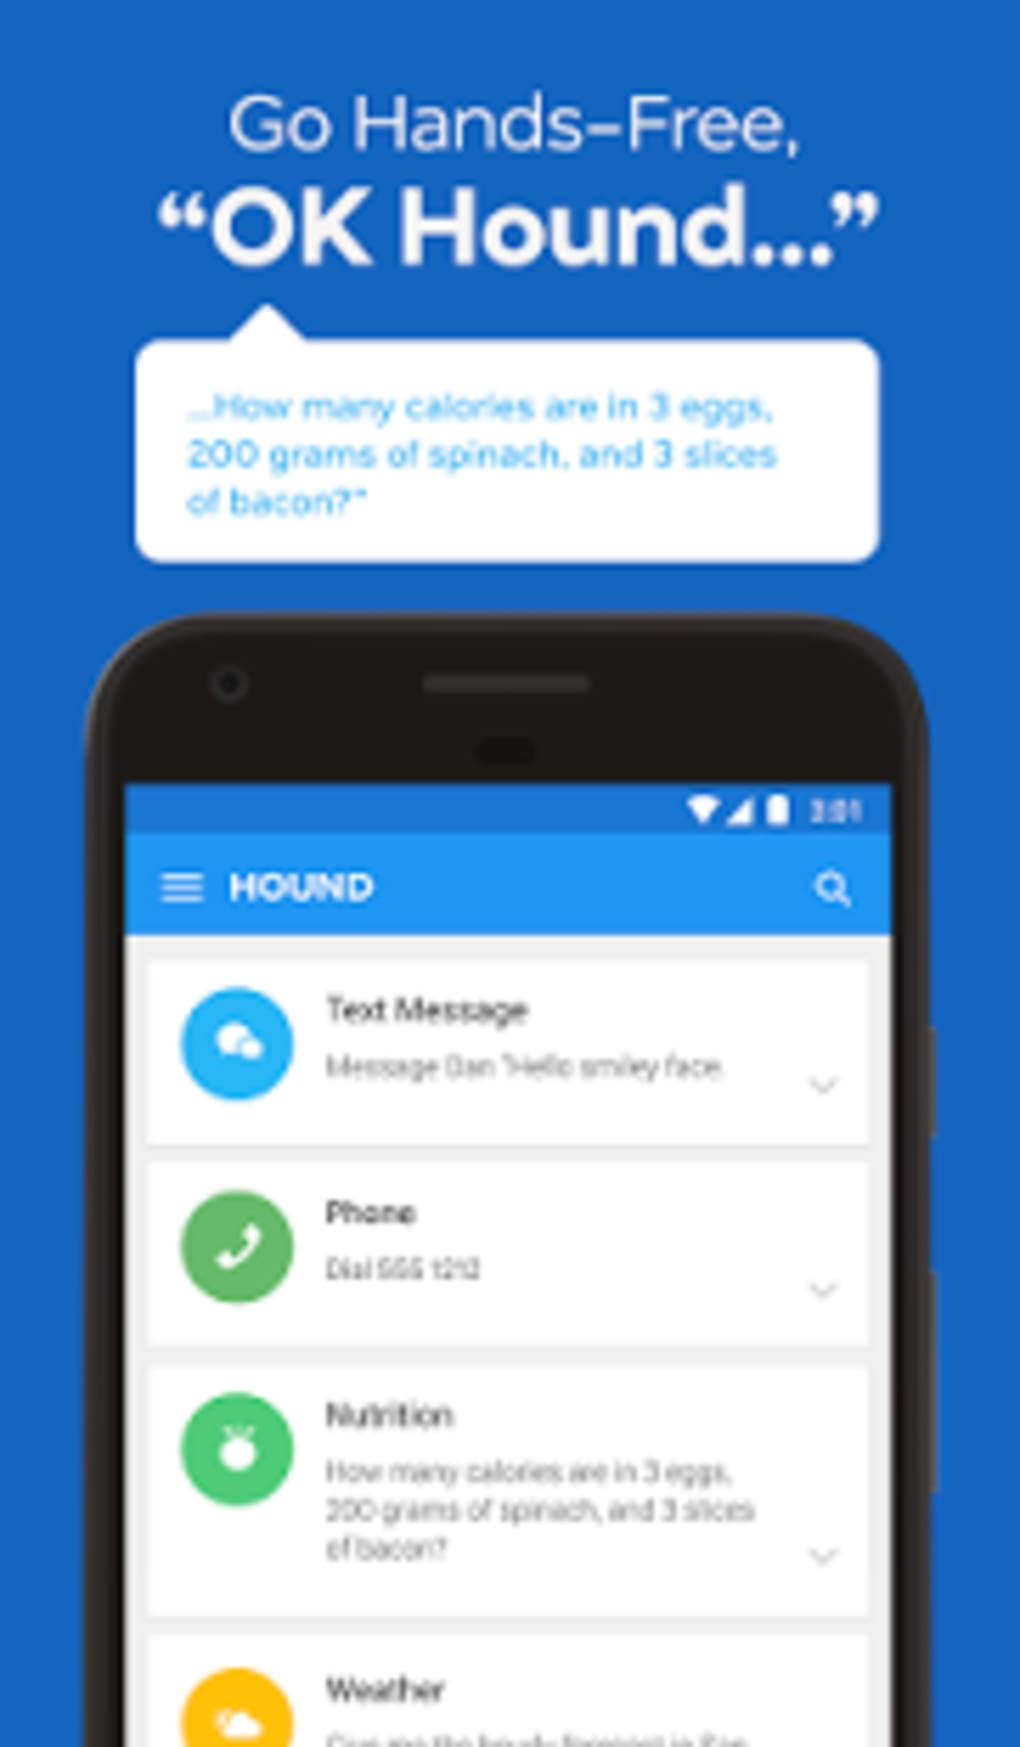 HOUND Voice Search & Assistant for Android - Download